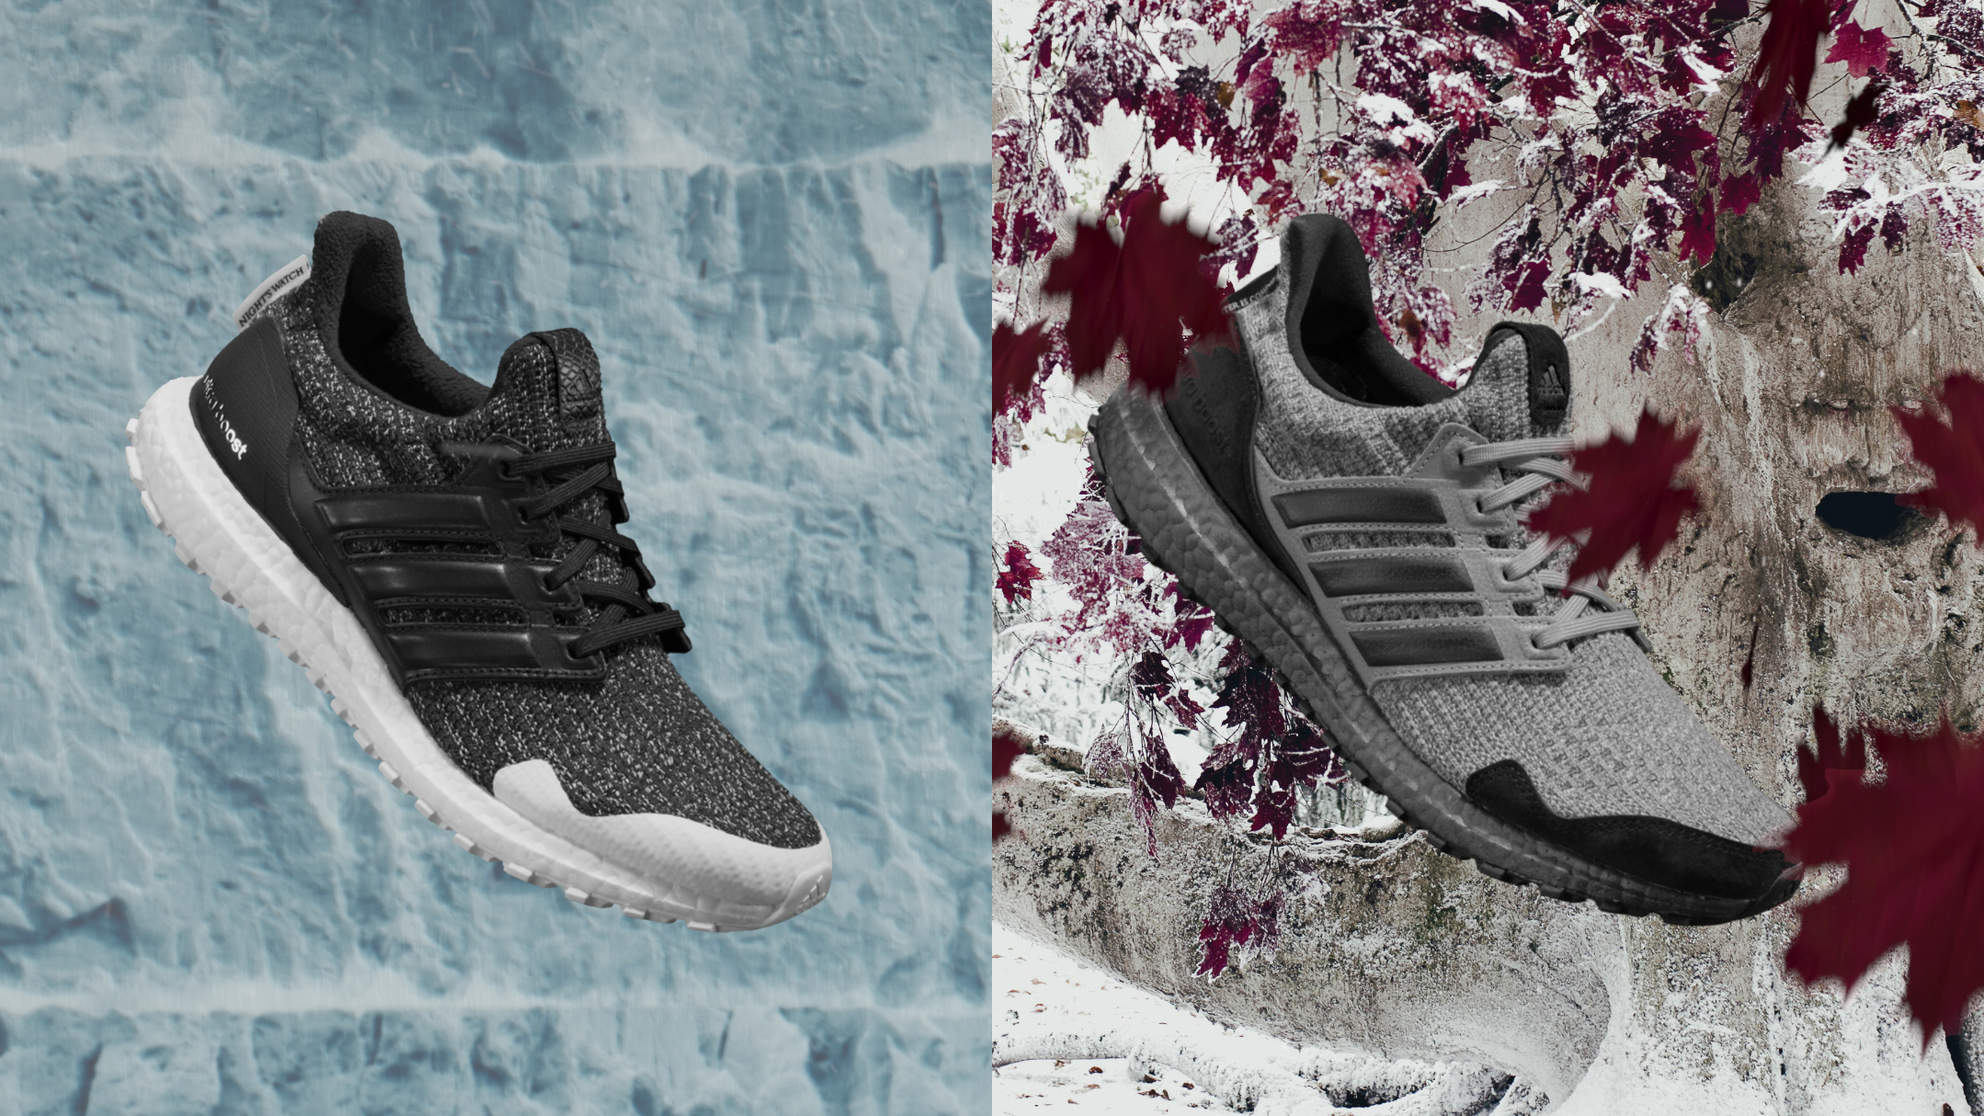 Adidas Just Launched Game of Thrones-Inspired Sneakers—and They're Selling Out Like Crazy